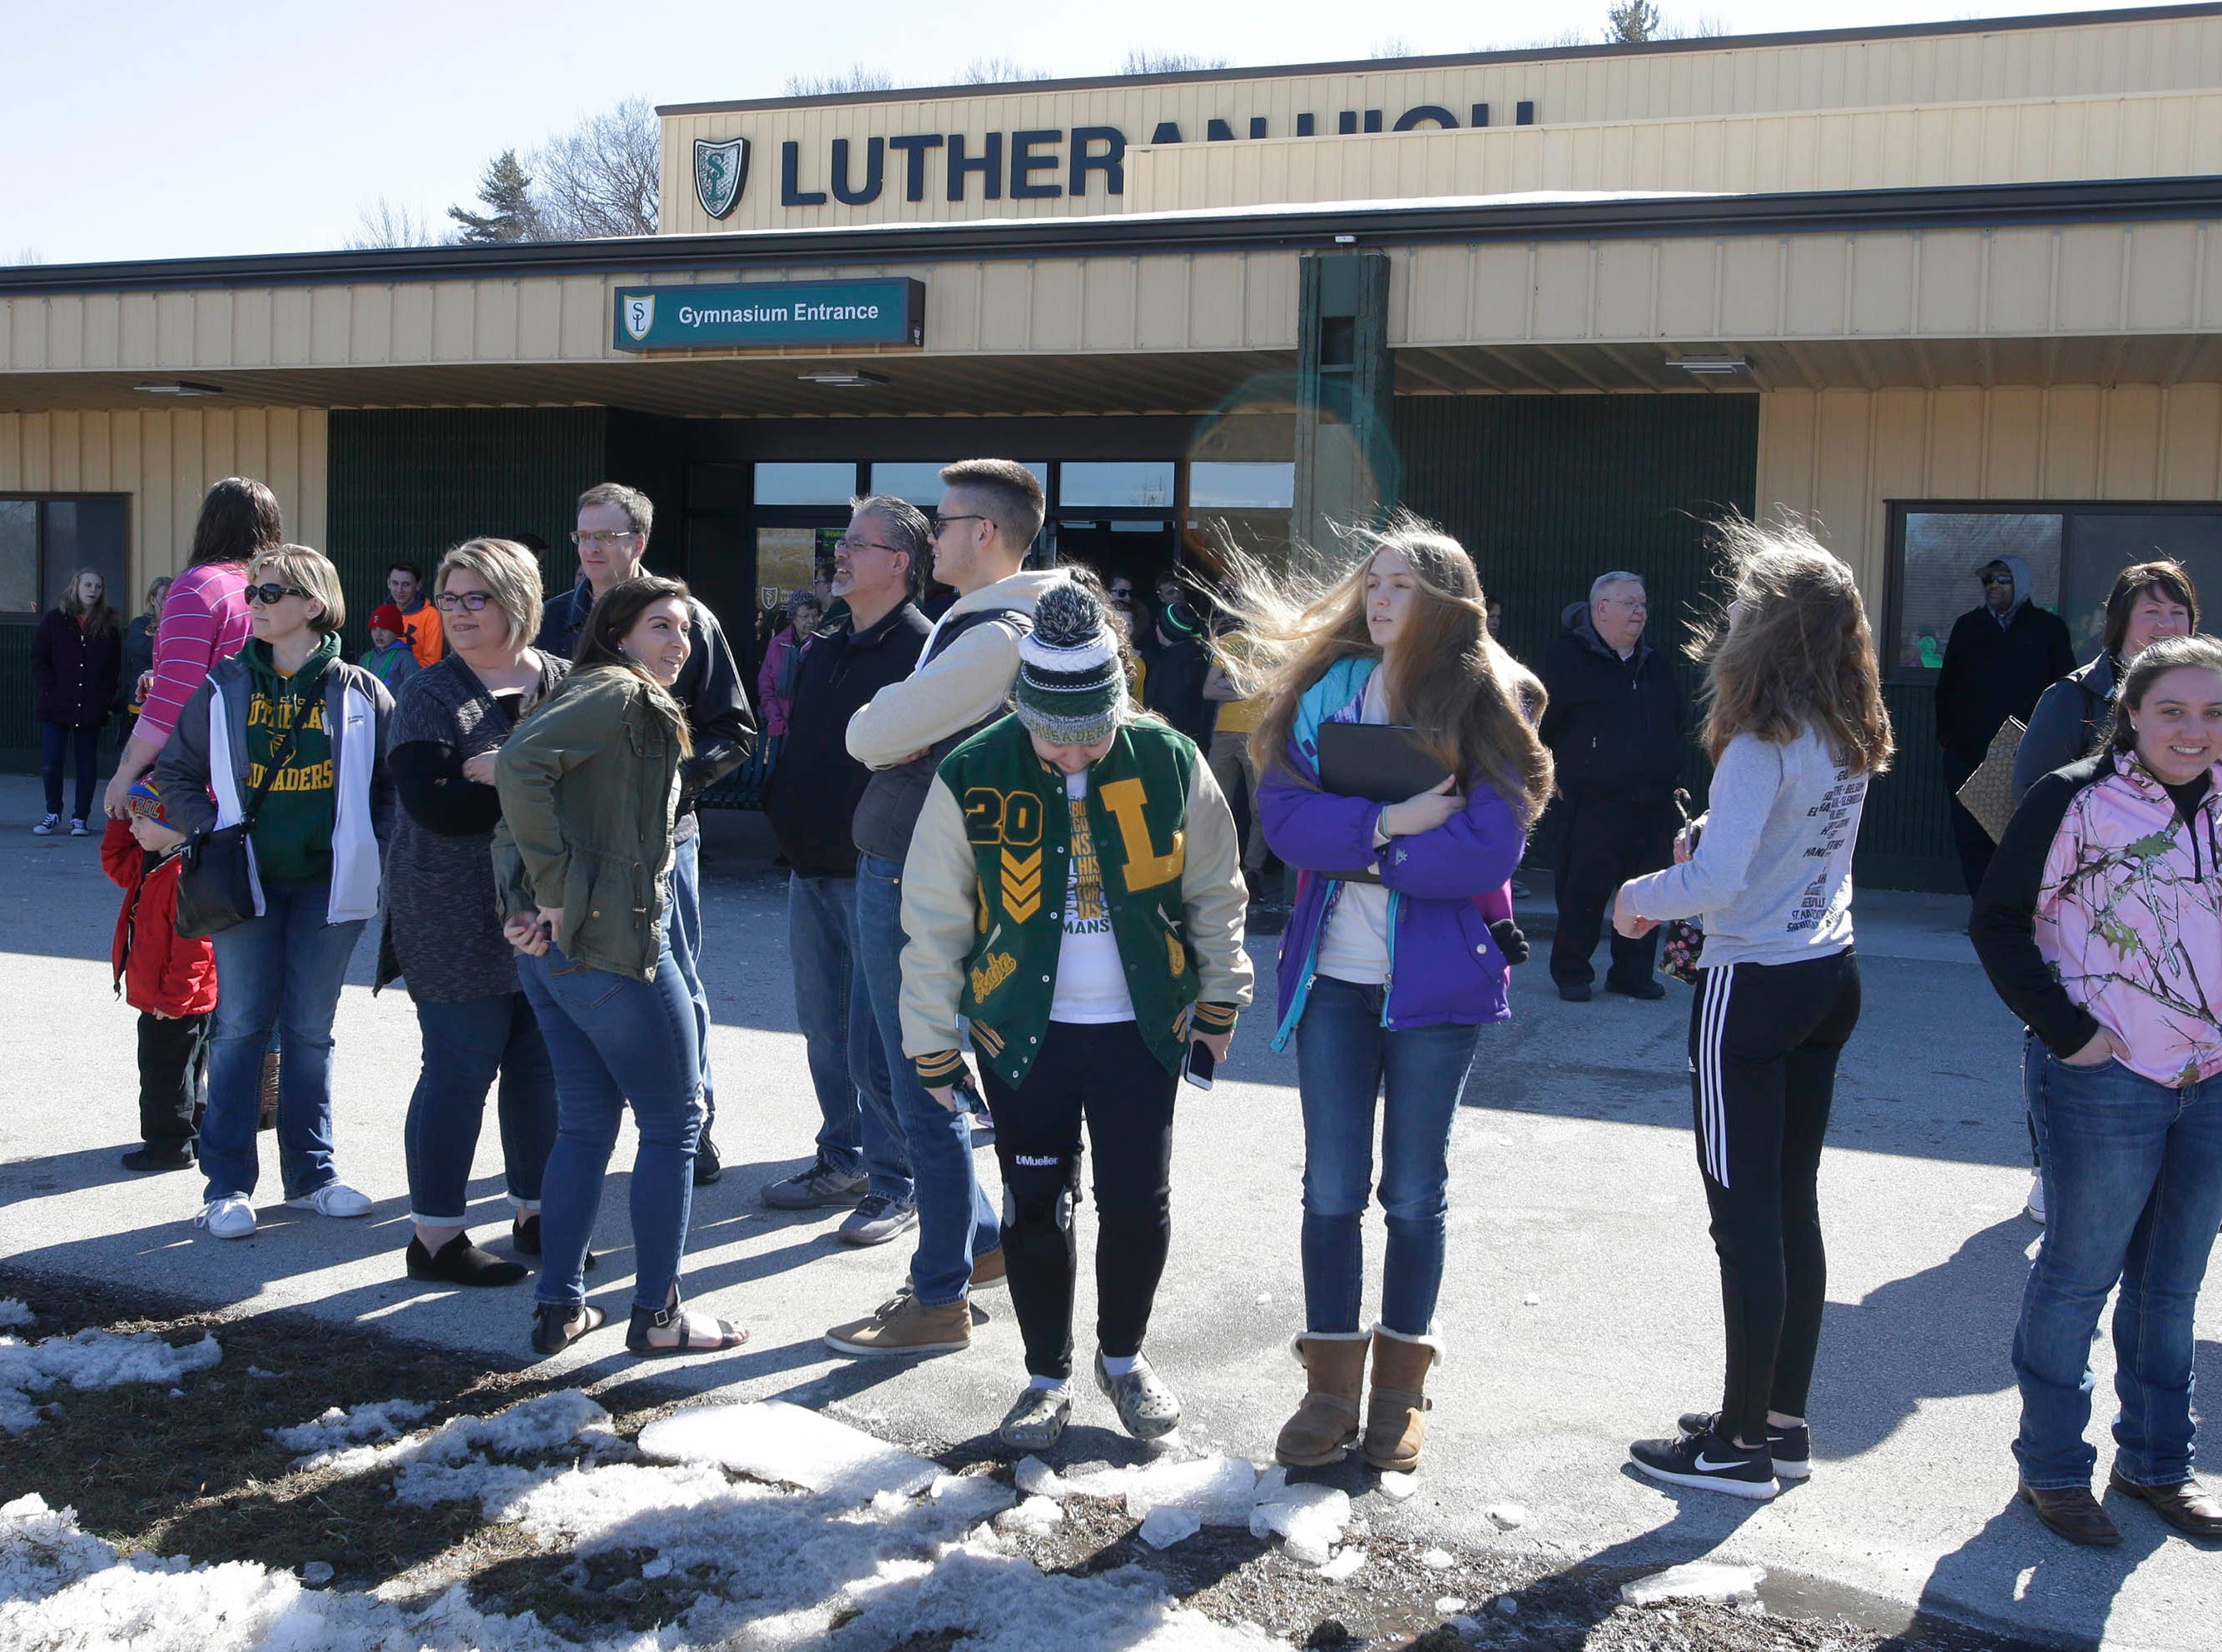 Sheboygan Lutheran fans wait outside the school for a rally celebrating the boys basketball team's WIAA Div. 5 State Championship, Sunday, March 17, 2019, in Sheboygan, Wis.